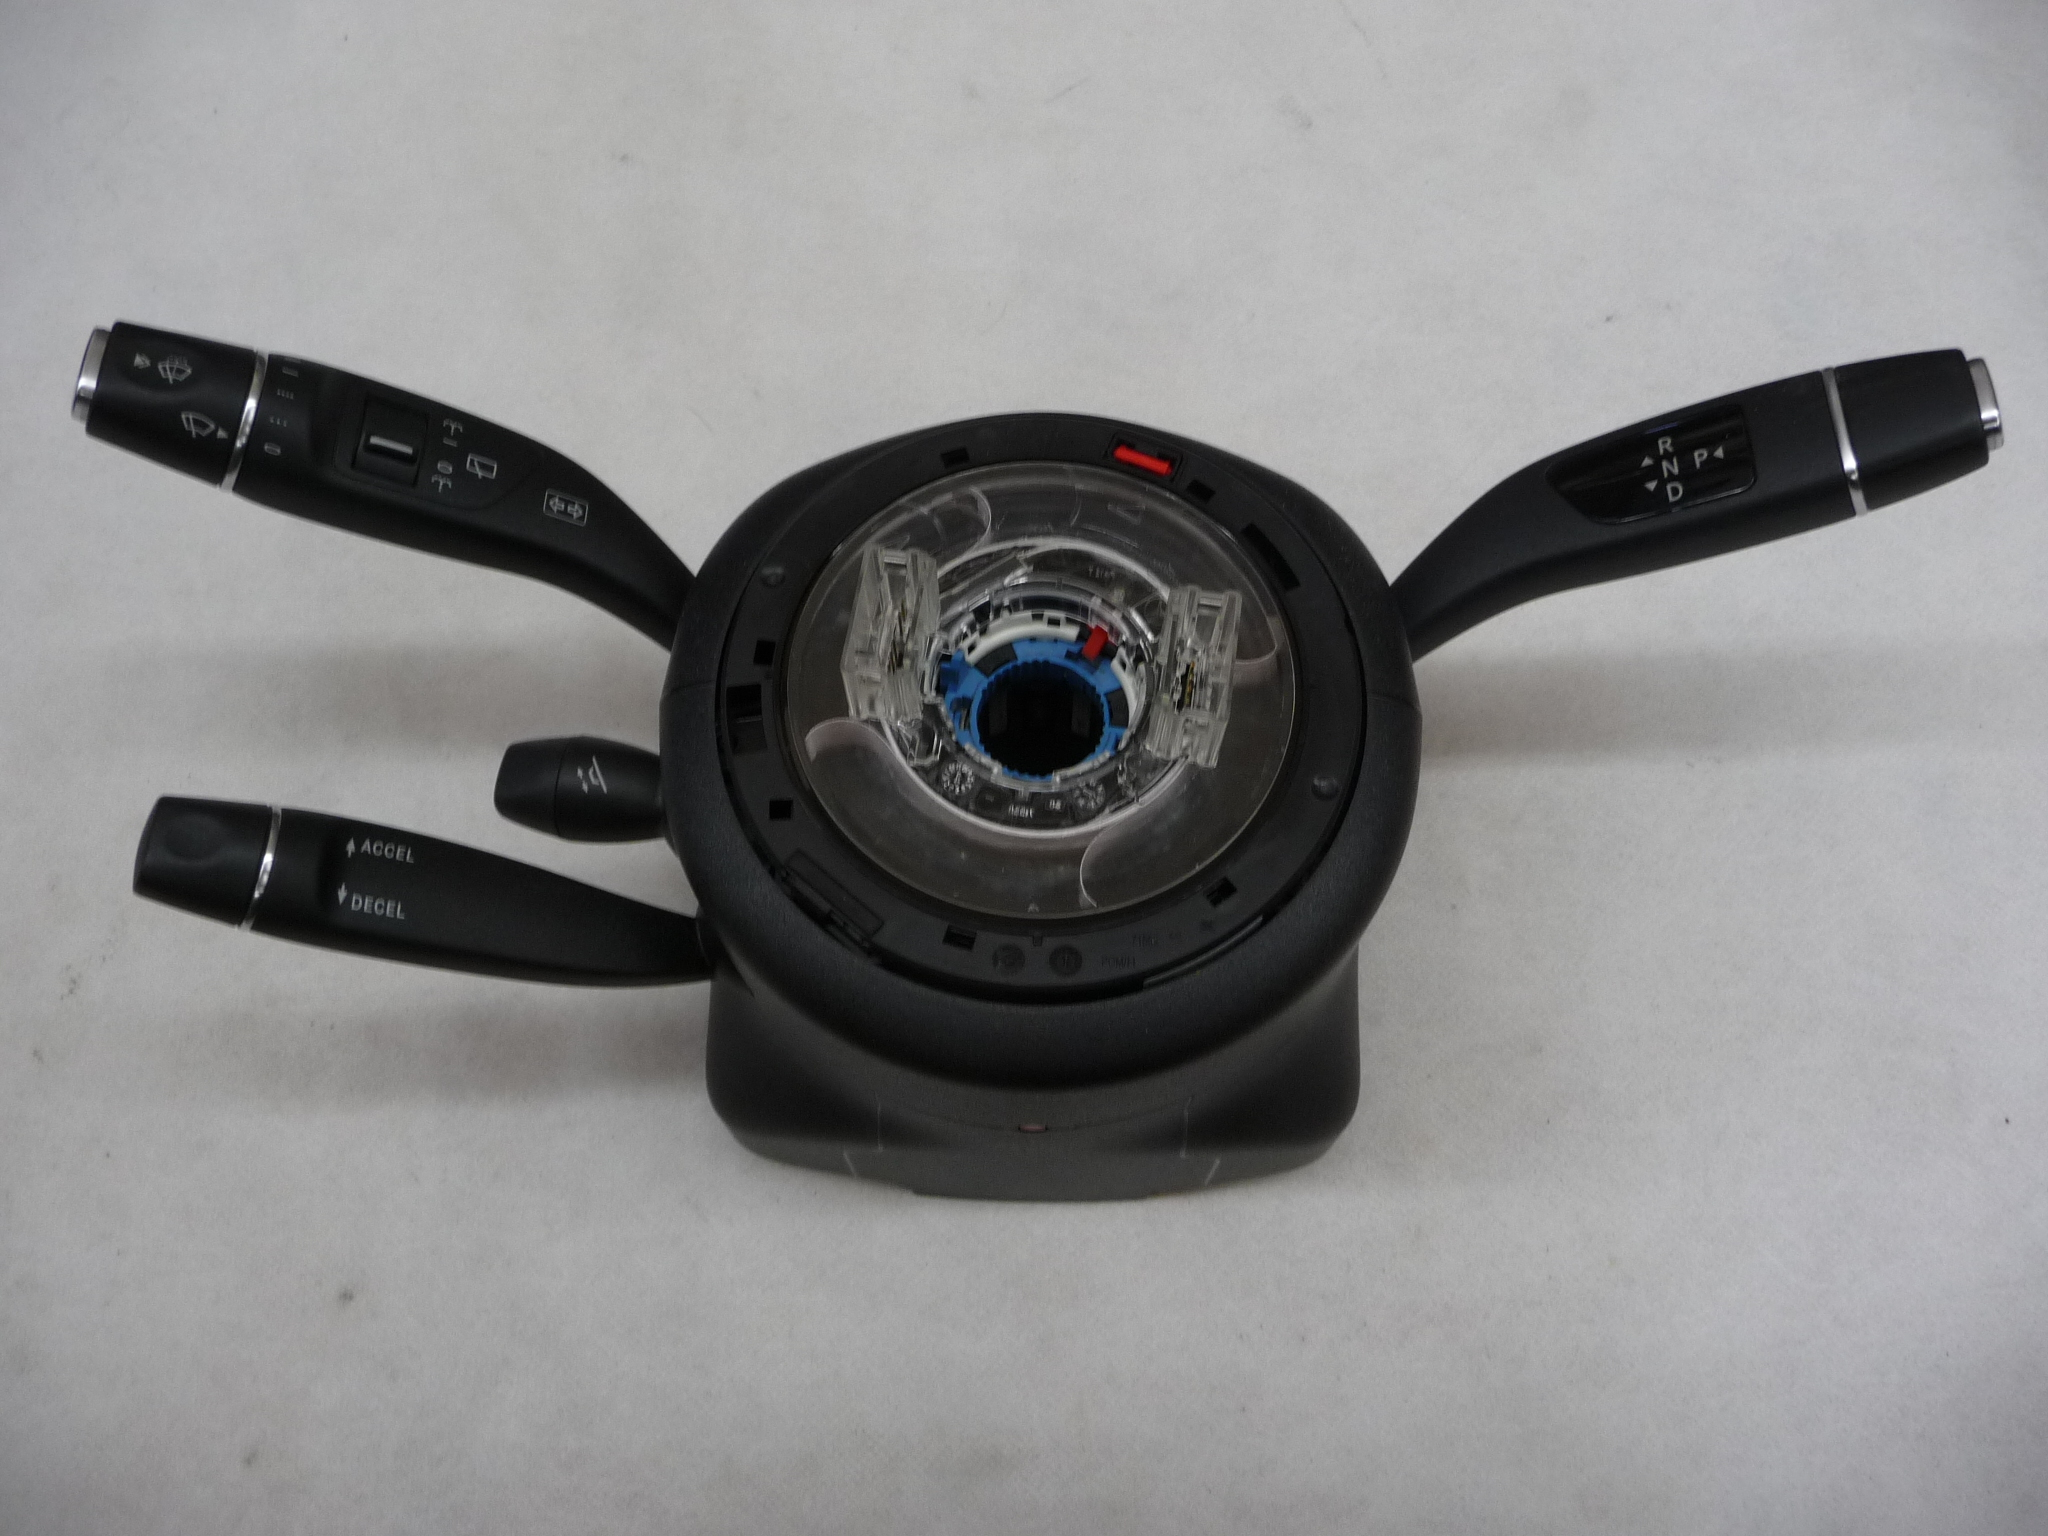 2016 2017 Mercedes Benz GL350 GL450 GL550 GLE300d GLE350 Steering Column Multi-Function Switch, Control Unit Black A16690001089051 ; A1669000108 ; A1669007806 OEM A1